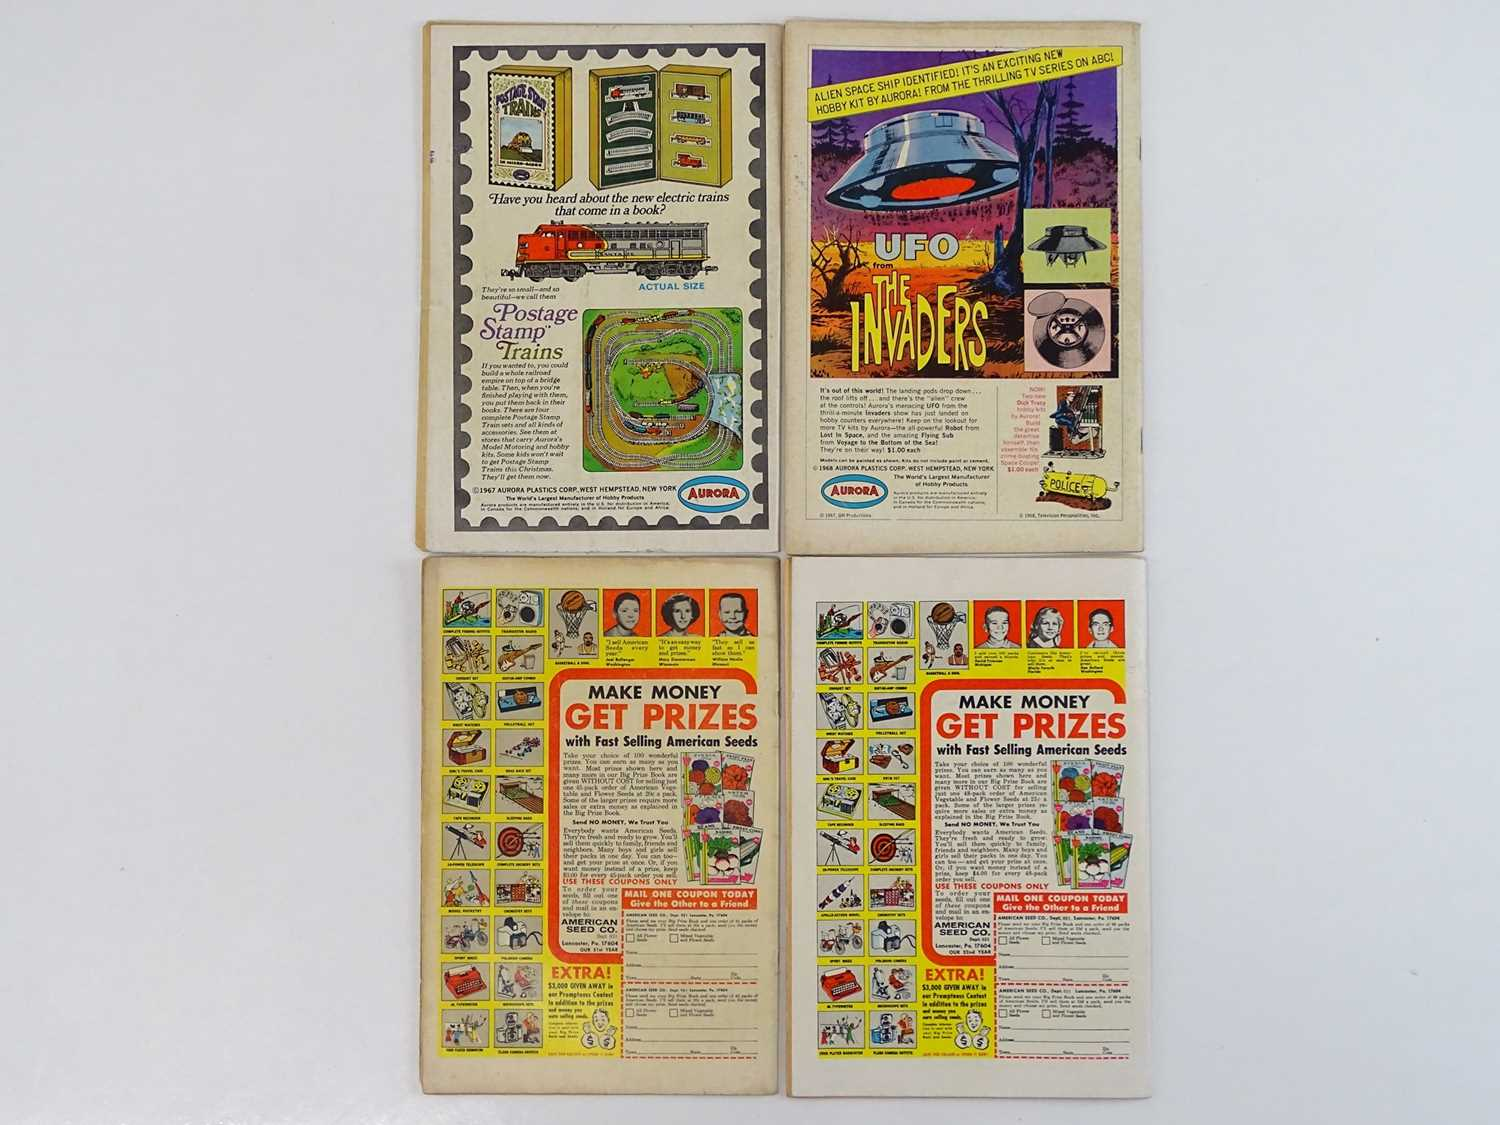 TEEN TITANS #13, 15, 20, 26 - (4 in Lot) - (1968/70 - DC - UK Cover Price) - Includes First - Image 2 of 2